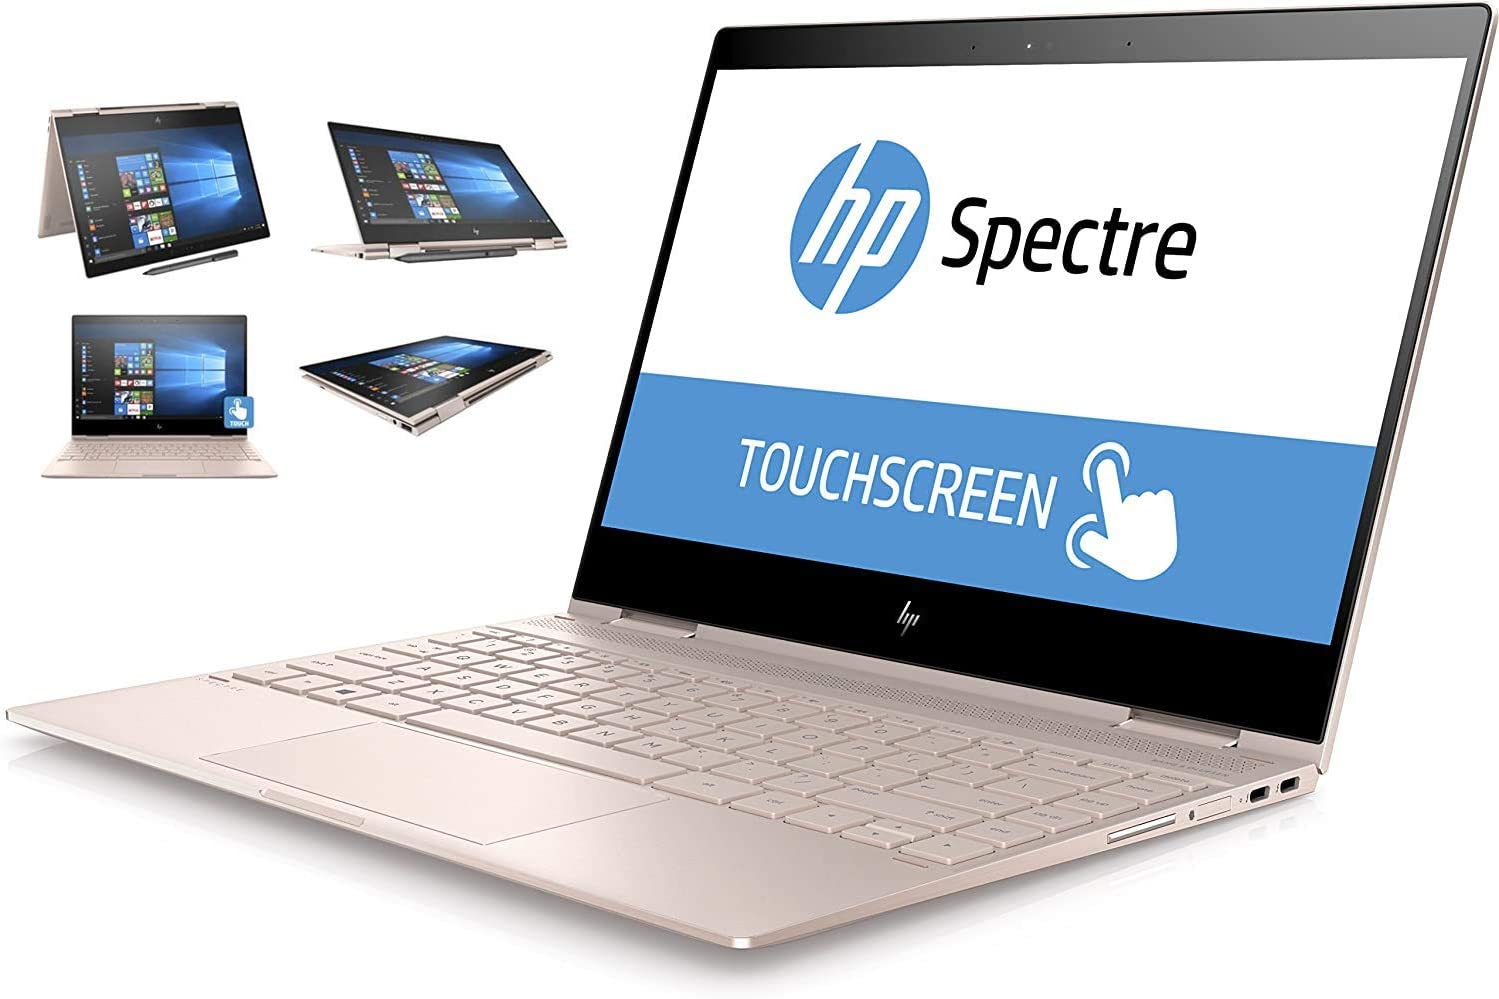 HP Spectre x360 13t Ultra Light Convertible 2-in-1 Laptop/Tablet (Intel 8th gen Quad Core Processor, 16GB RAM, 256GB SSD, 13.3